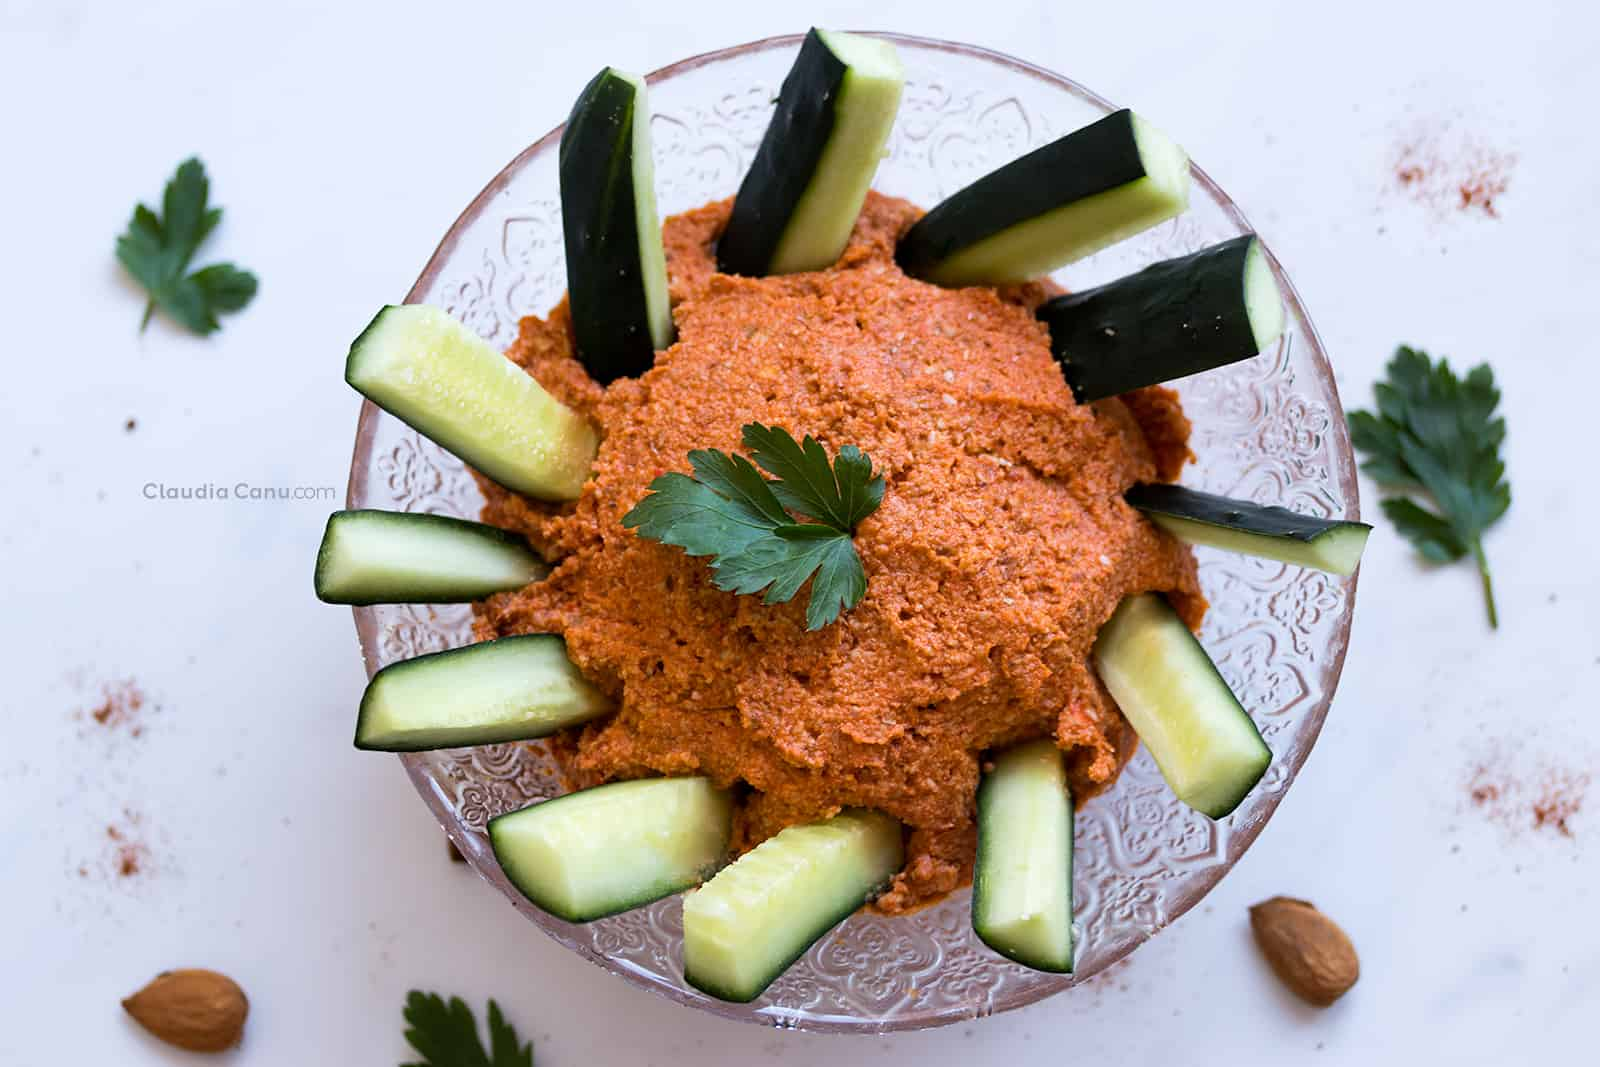 Mojo Picón or Red Bell Pepper Spread